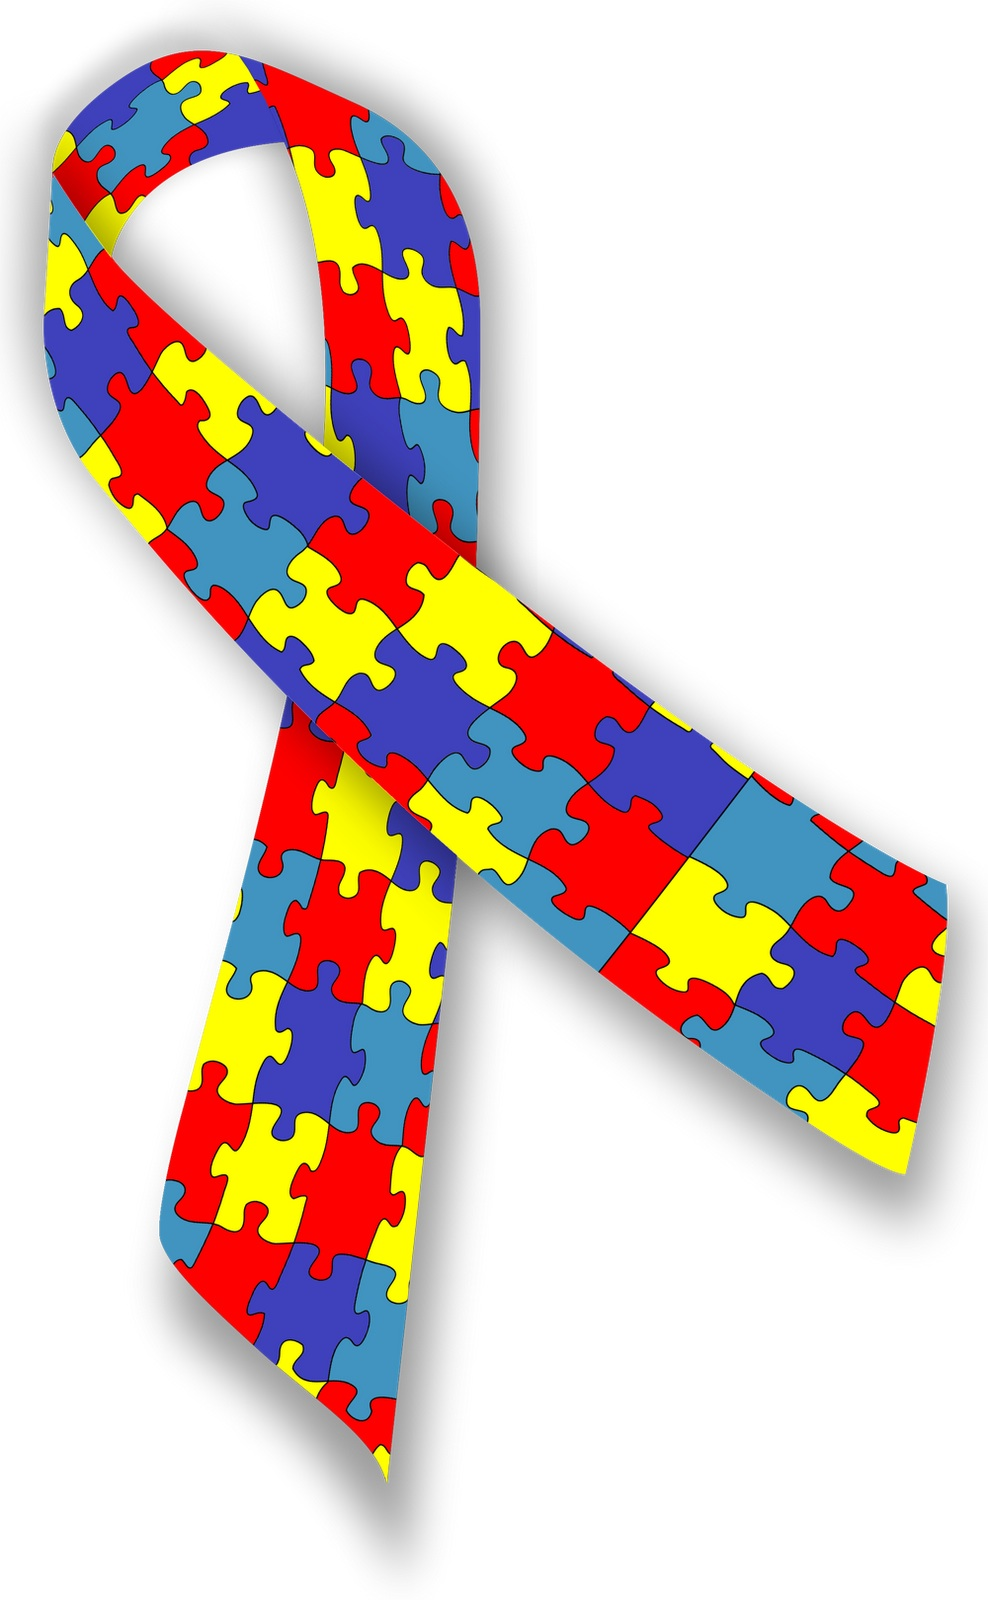 image of a ribbon made of colorful puzzle pieces